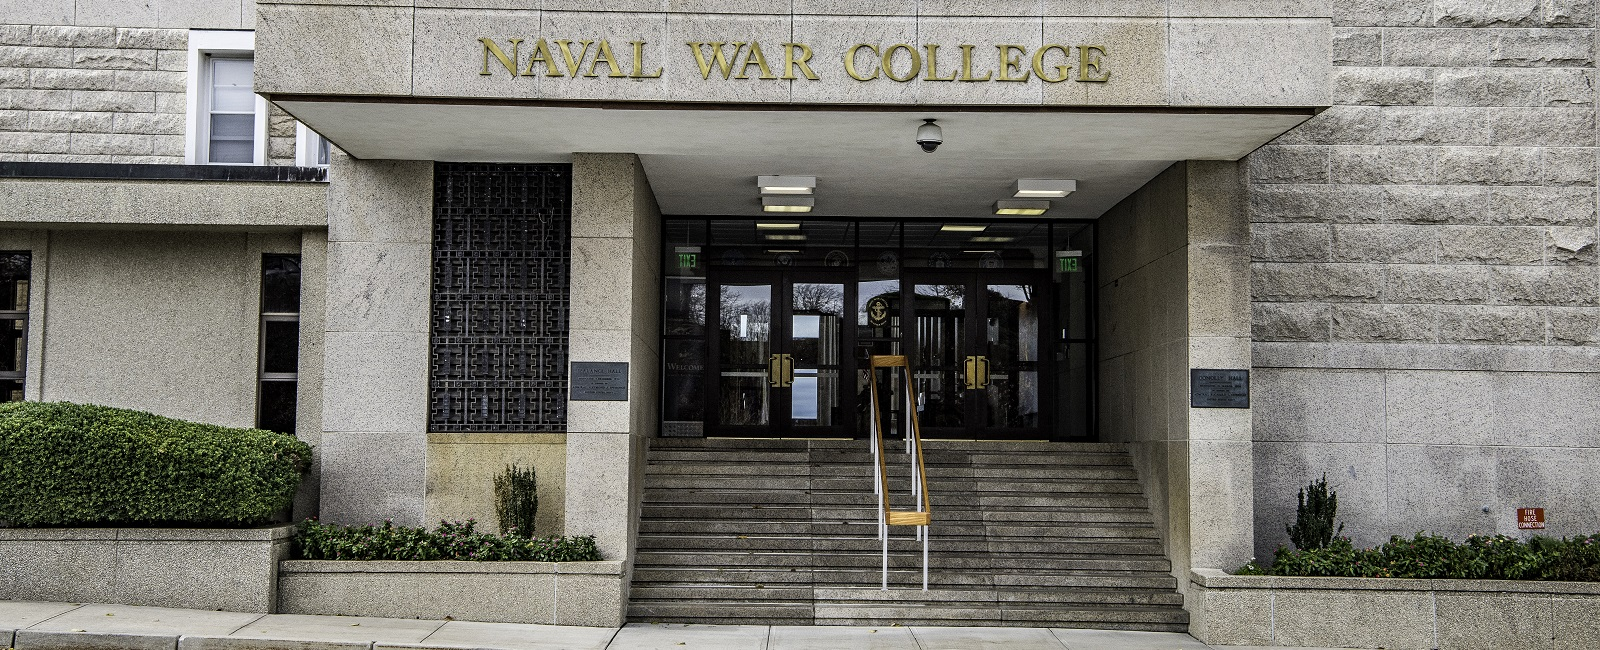 U.S. Naval War College building